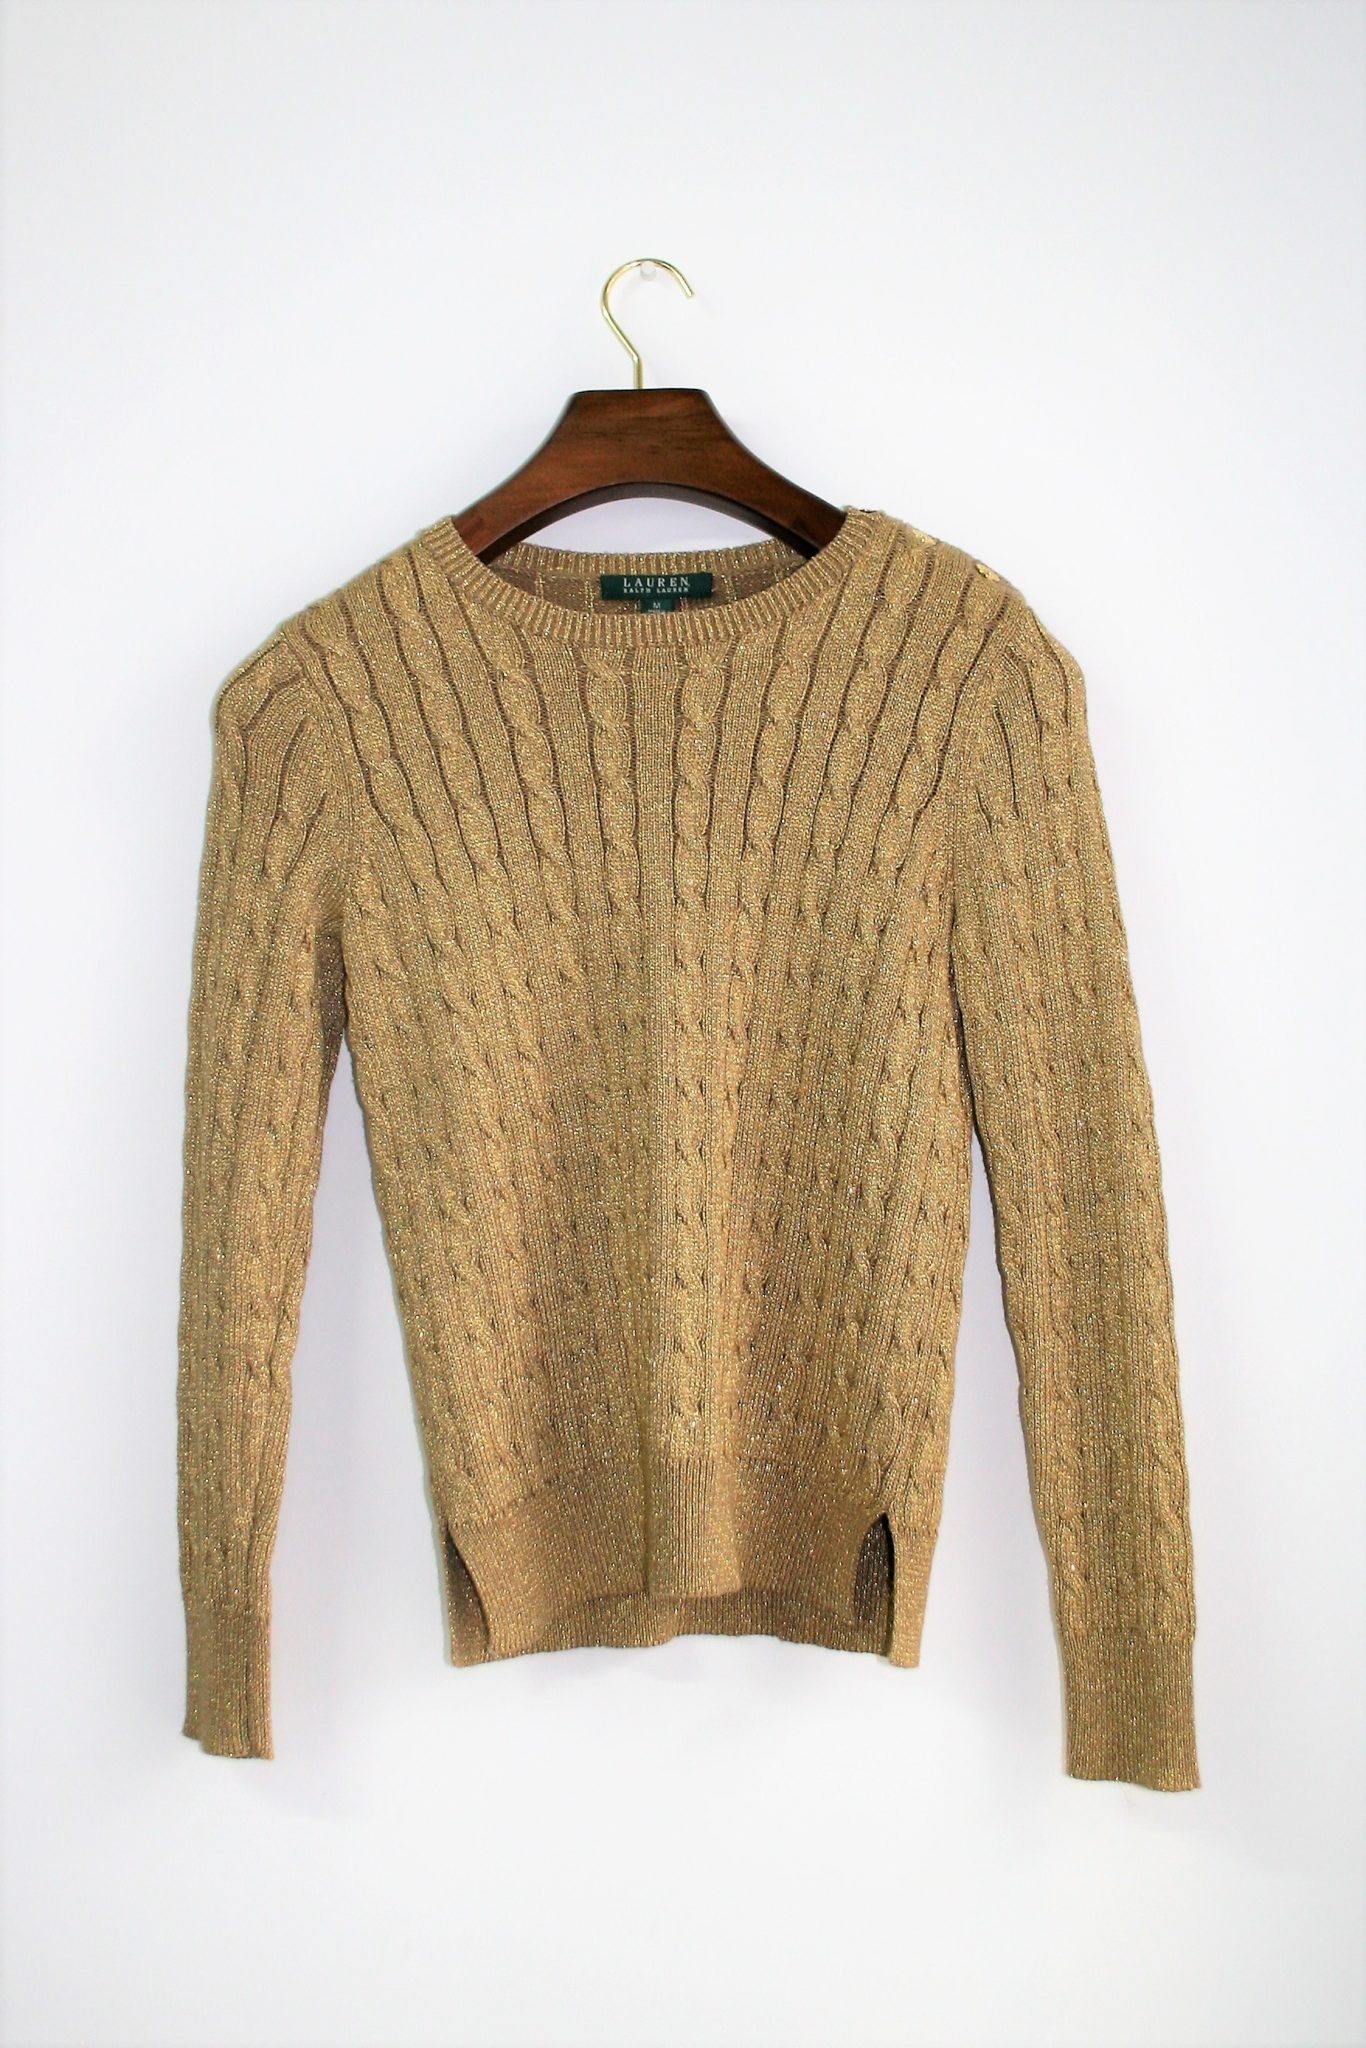 Ralph Lauren Gold Cable Knit Sweater – Trove Fashion 4520efc90